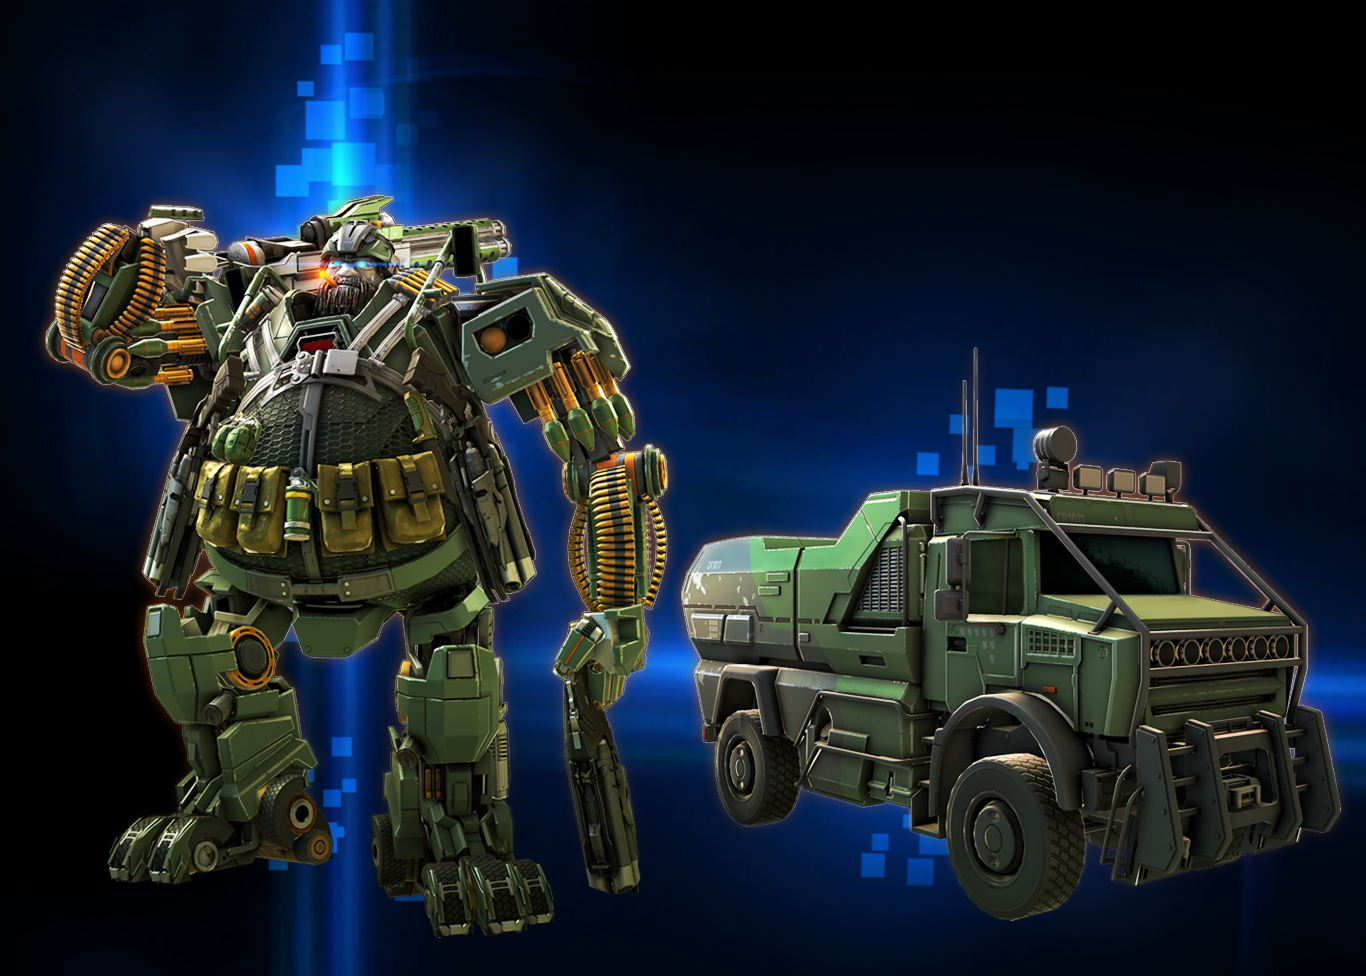 The Last Knight Hound Joins Transformers To Fight